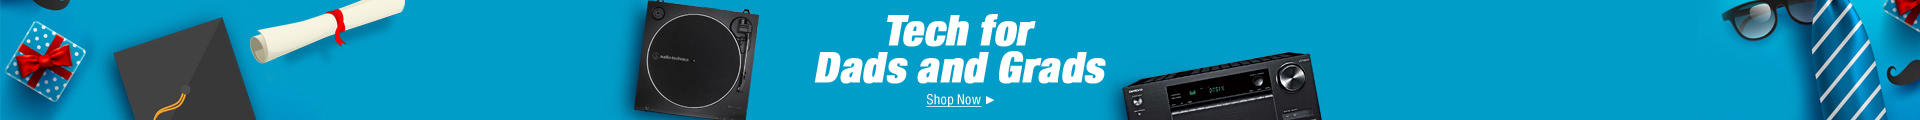 Tech for Dads and Grads